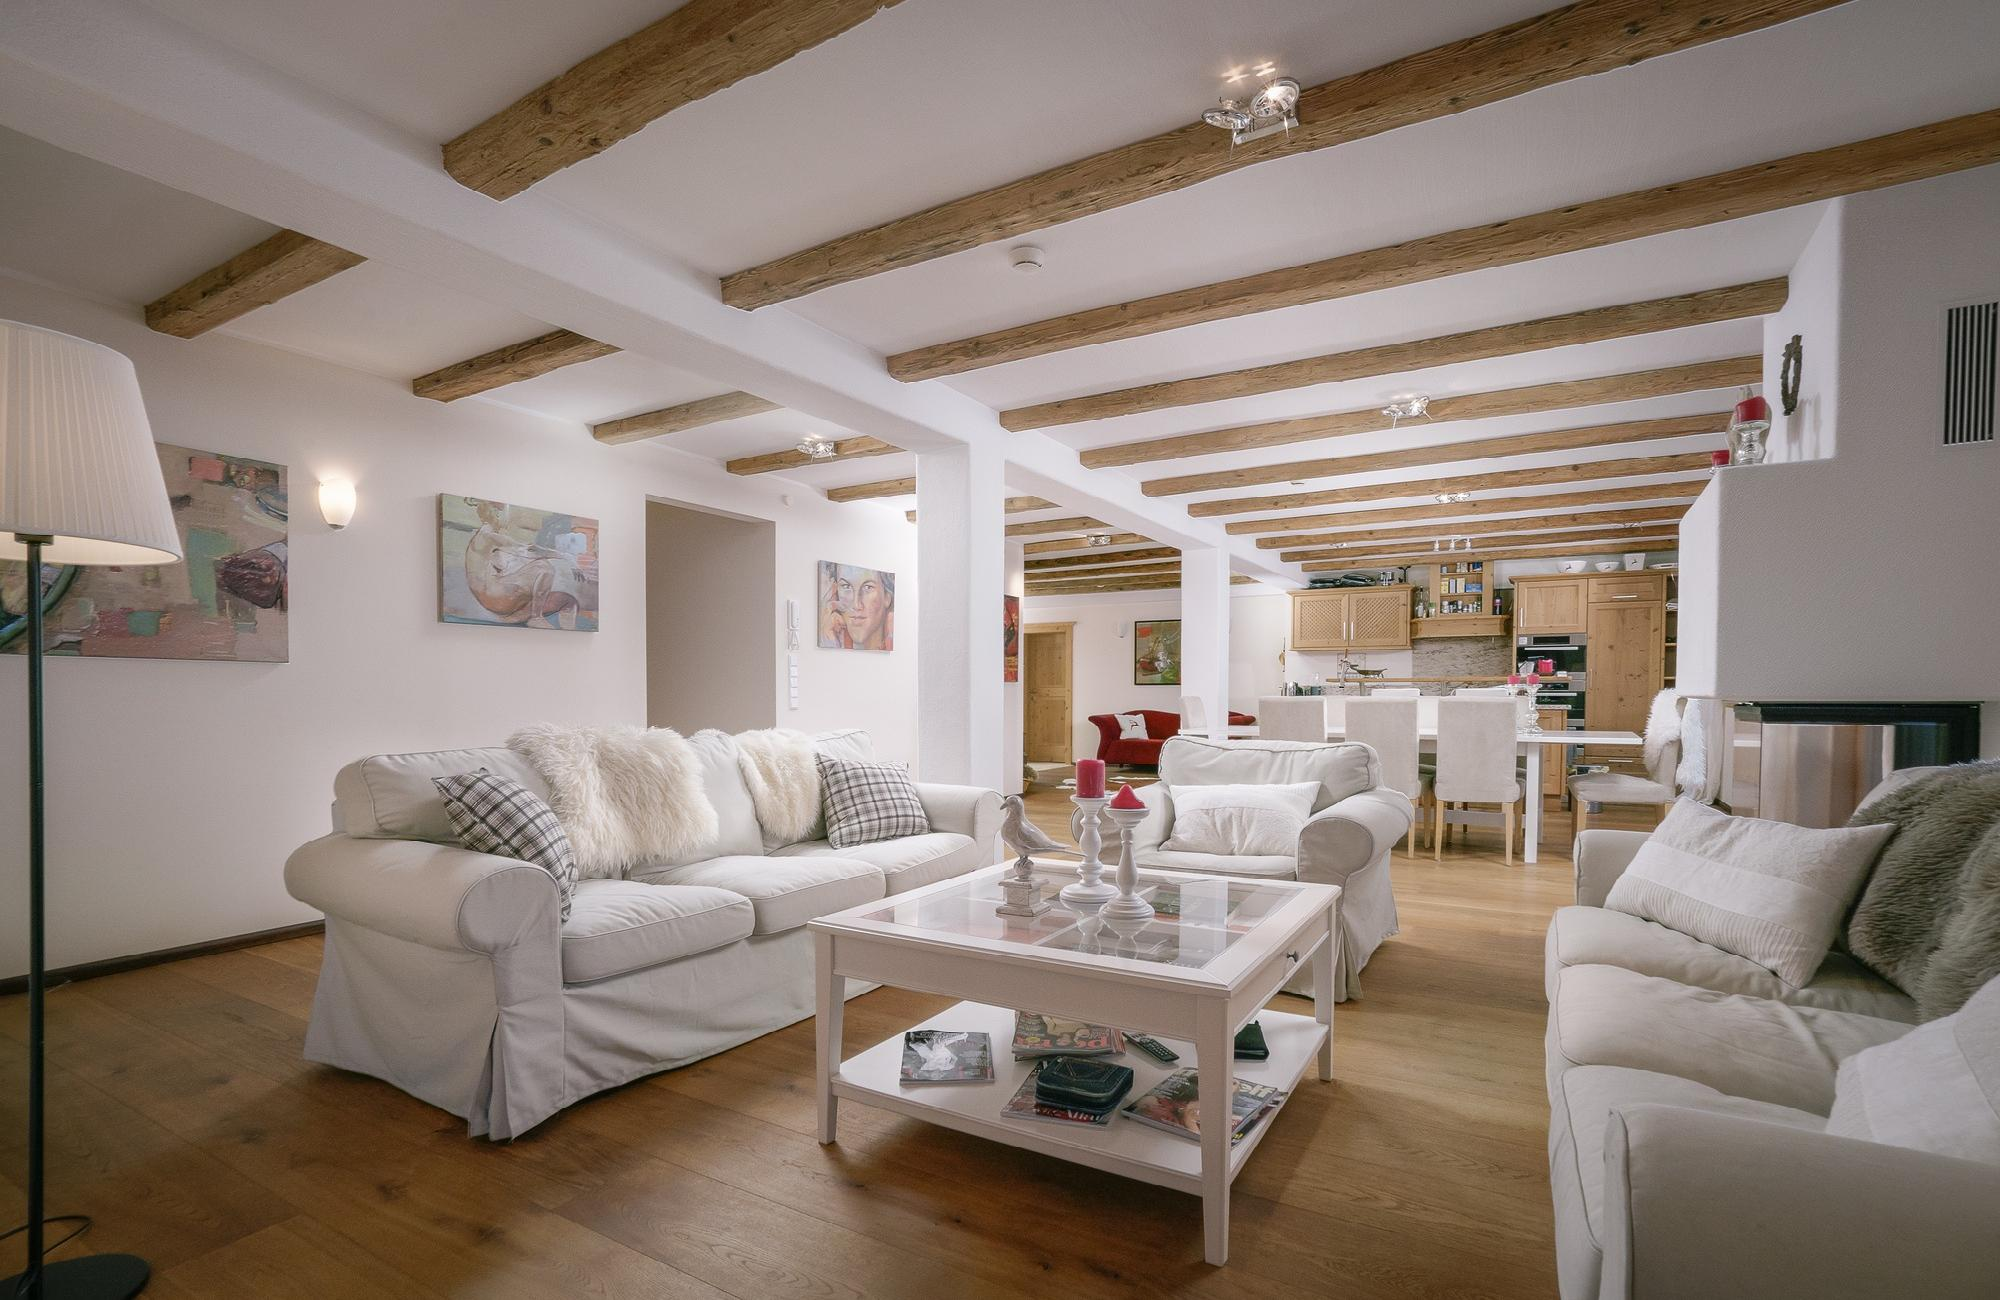 Stylish luxury apartment in an excellent location for Sale - Tirol - Austria